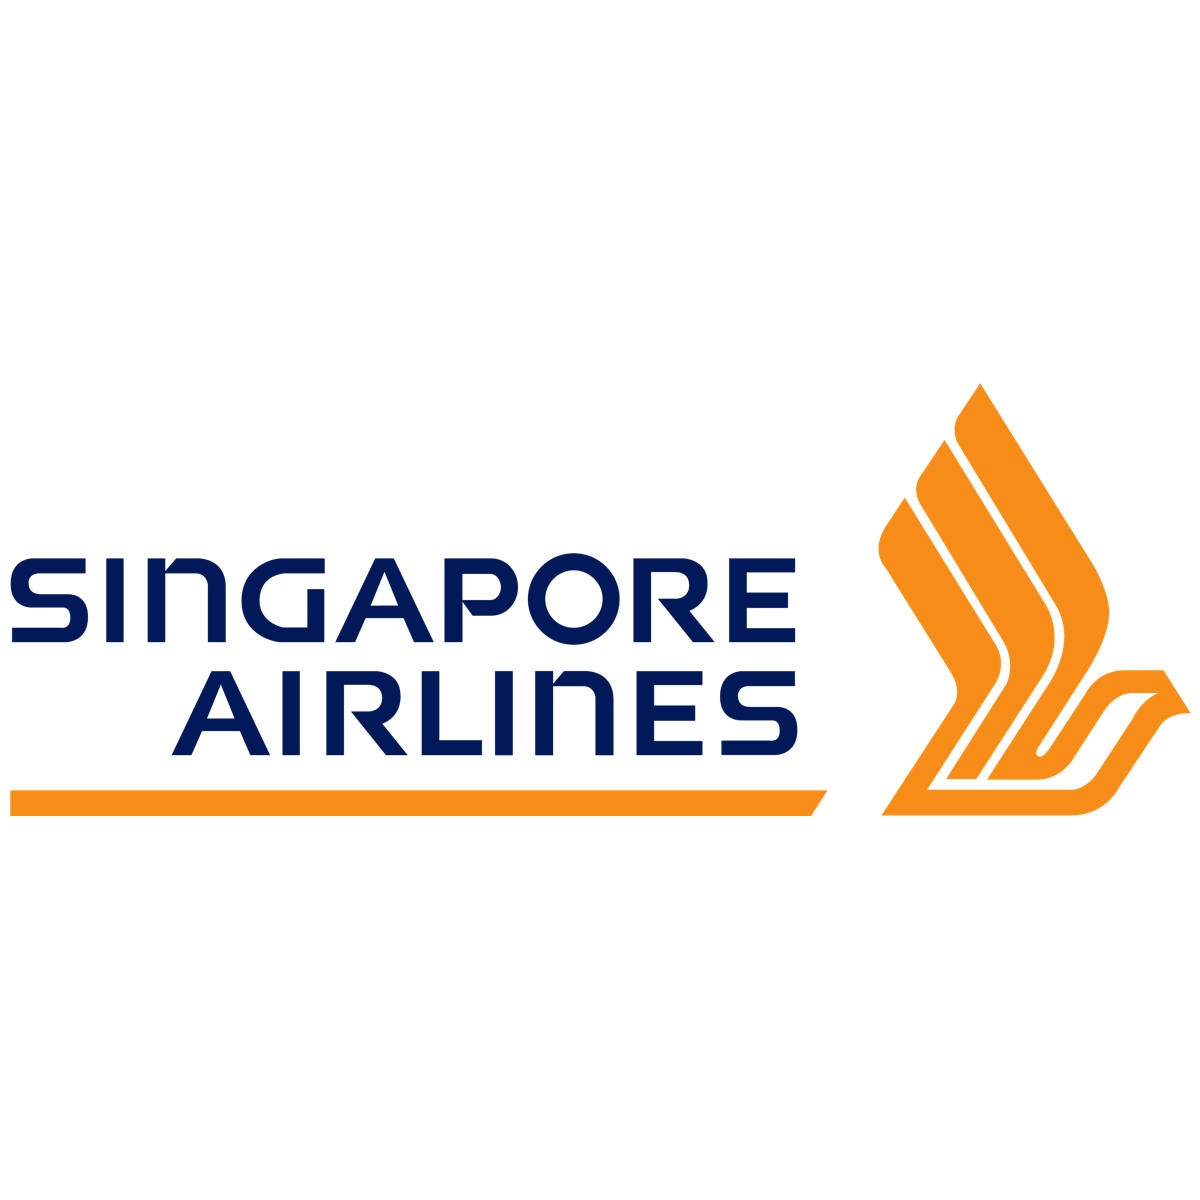 Singapore Airlines - DBS Vickers 2017-02-08: Core earnings in line